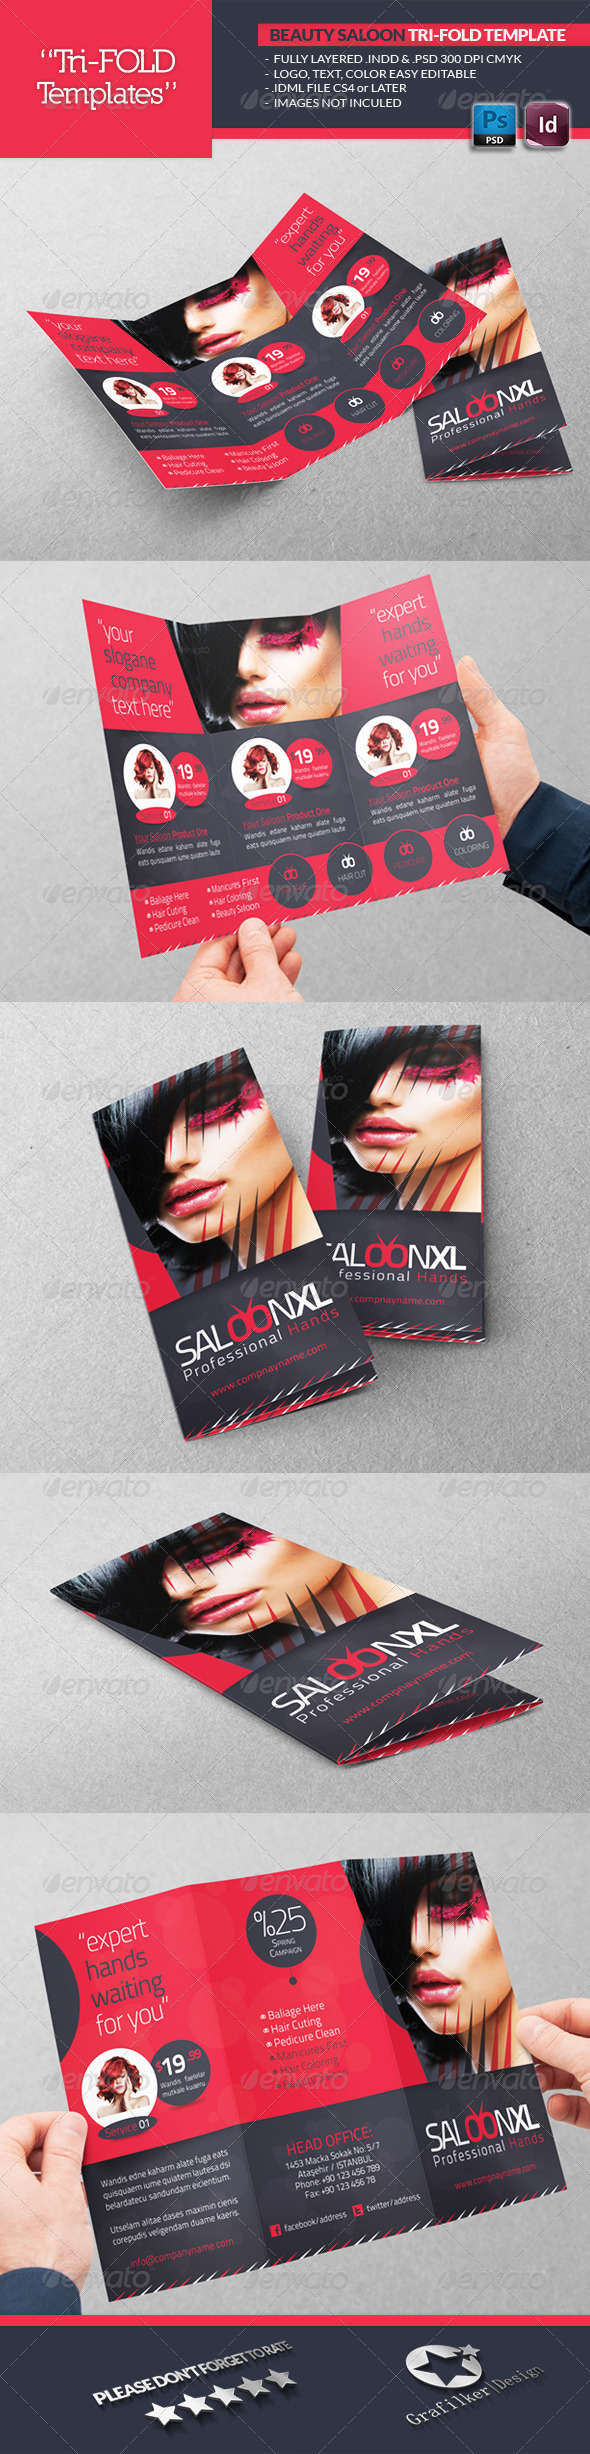 GraphicRiver Beauty Saloon Tri-Fold Template 4563729